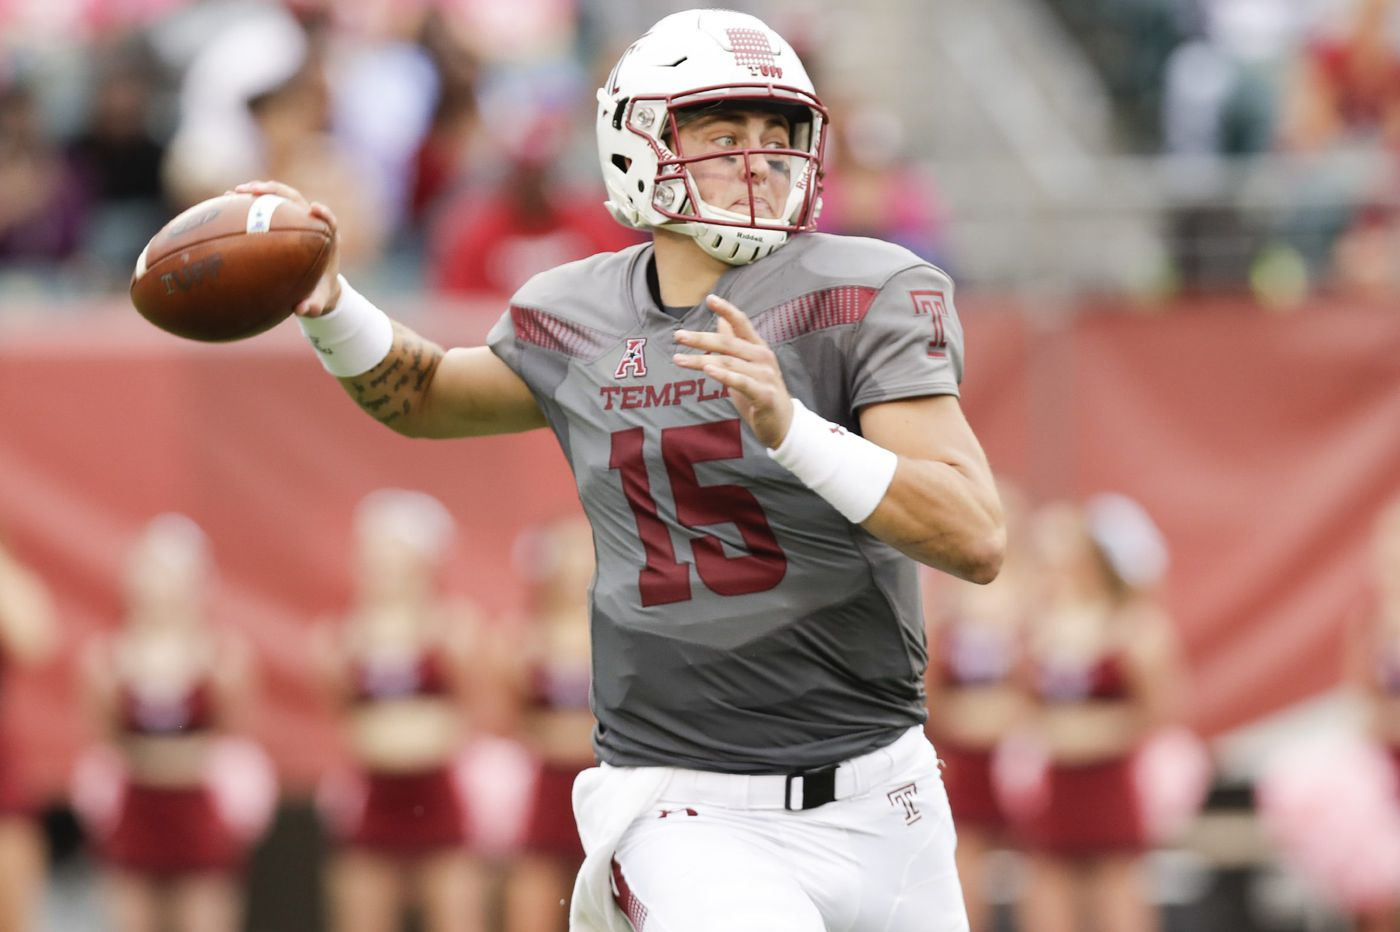 Temple quarterback Anthony Russo is embracing his role as a team leader